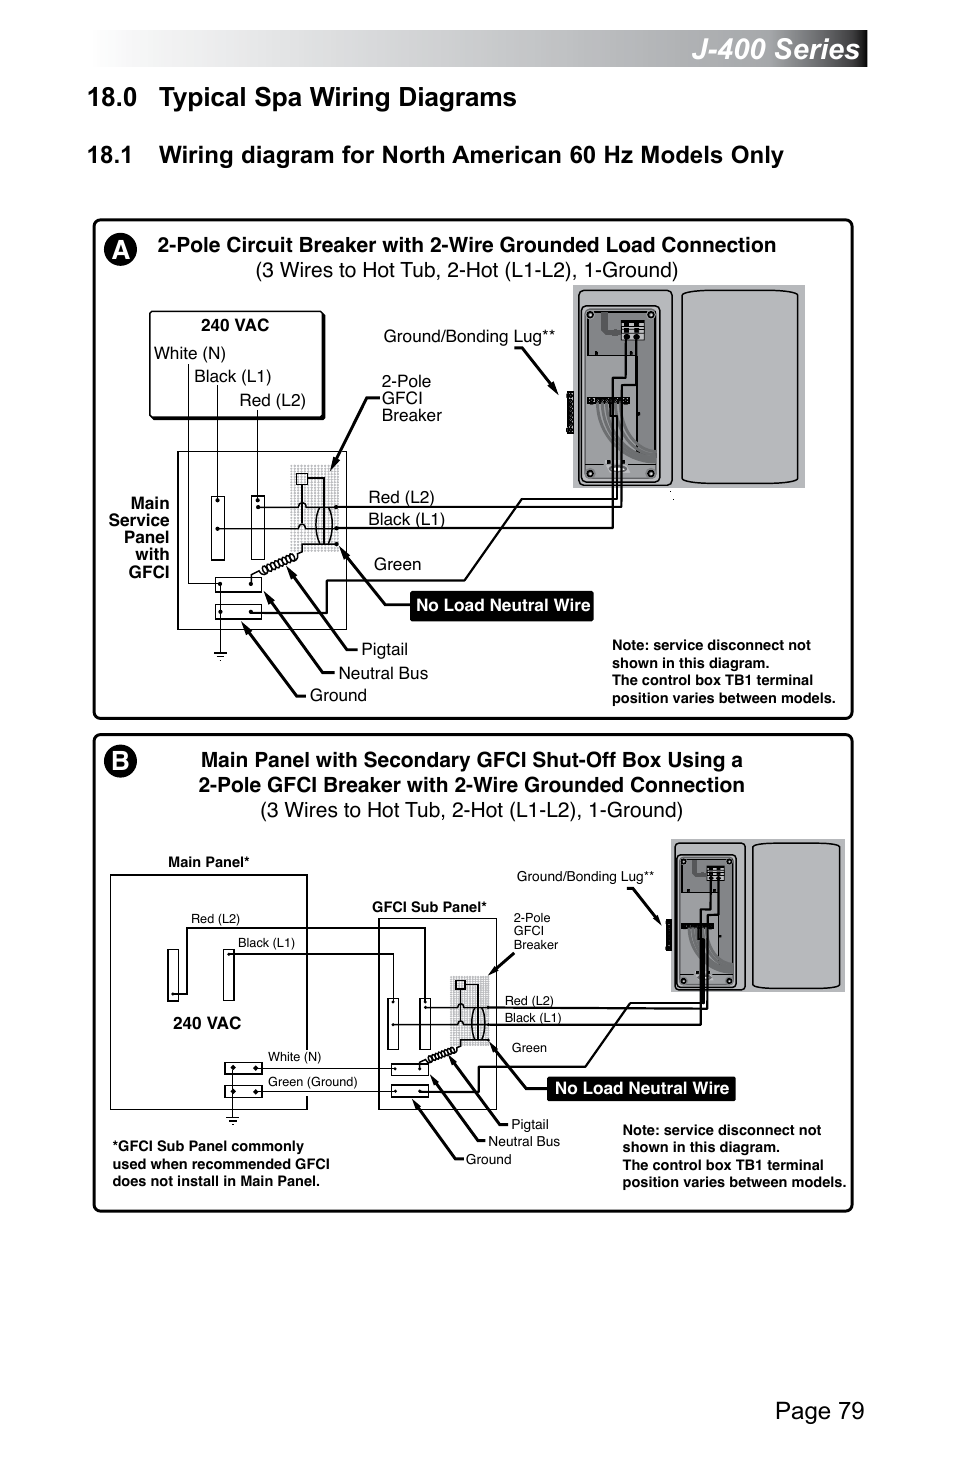 0 typical spa wiring diagrams j 400 series page 79 jacuzzi j 0 typical spa wiring diagrams j 400 series page 79 jacuzzi j 470 user manual page 85 104 asfbconference2016 Choice Image